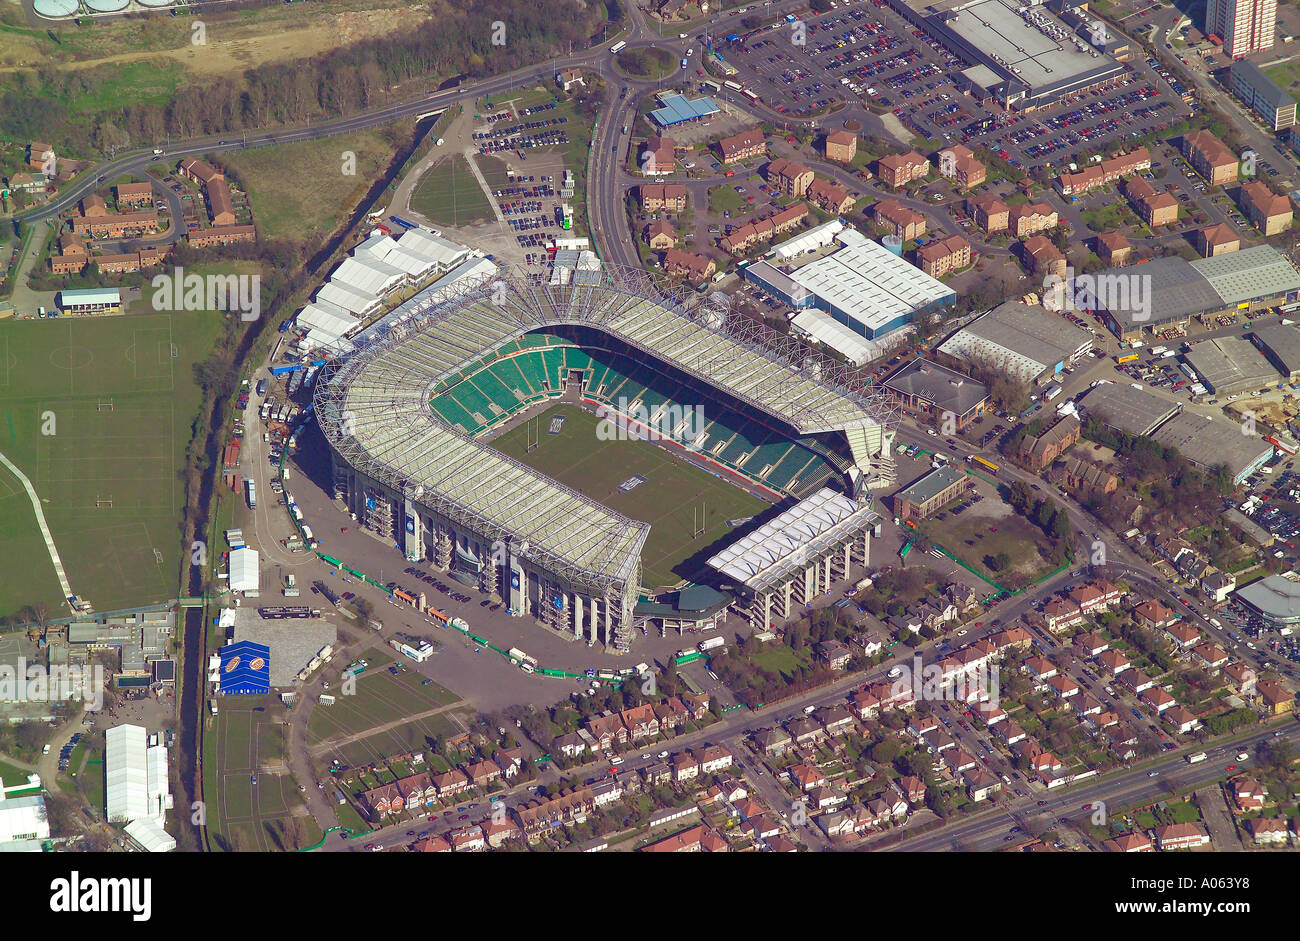 Aerial view of Twickenham Stadium, the home of Rugby Football Union in London. It is also known as Twickers & the Cabbage Patch - Stock Image